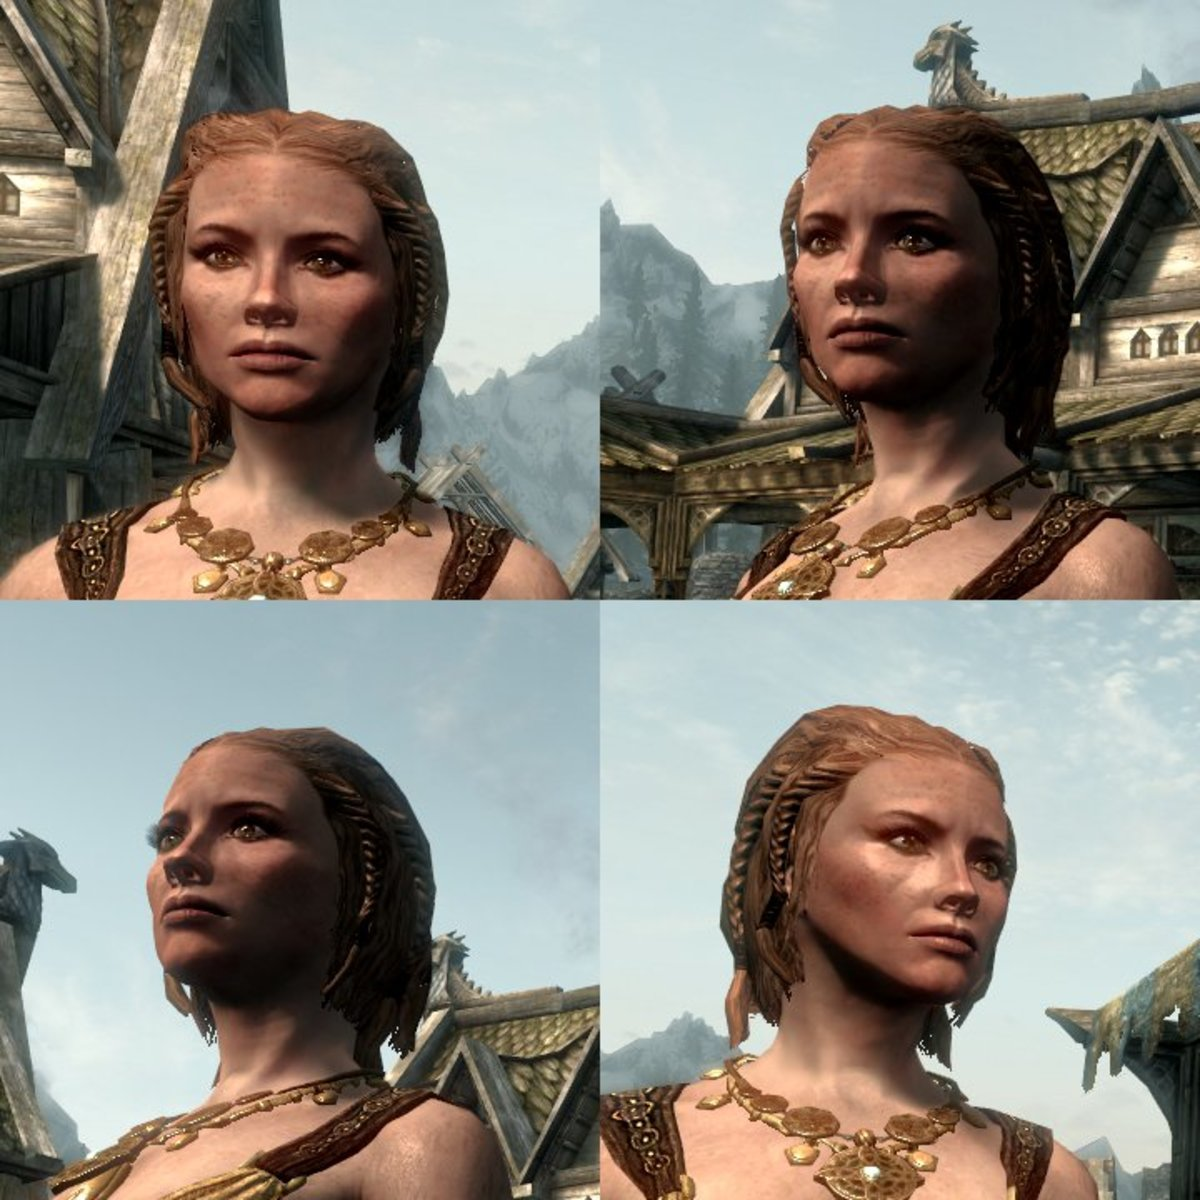 This character uses navetsea's Female Face Retexture. I find navetsea's works well for wrinkles, but is overkill for Nords (who have no wrinkles to speak of).